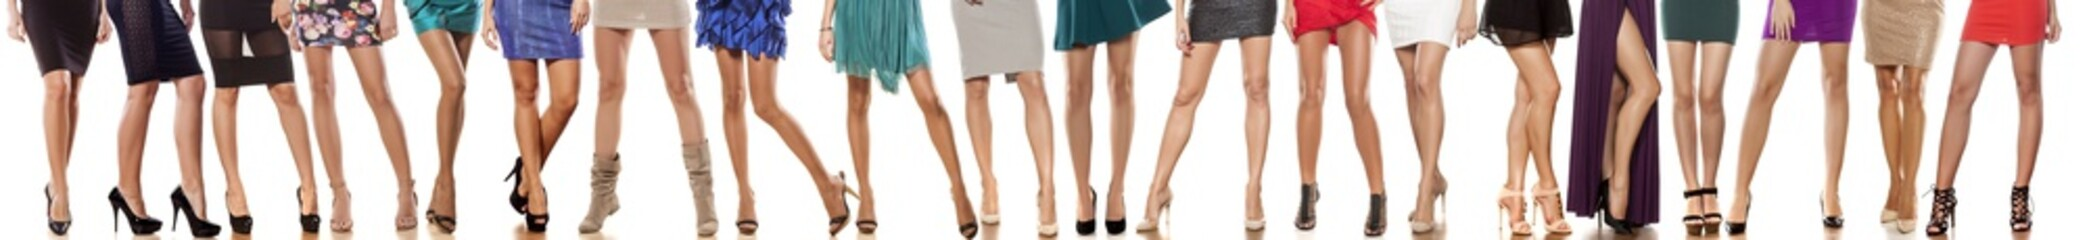 collage of female legs in short dresses